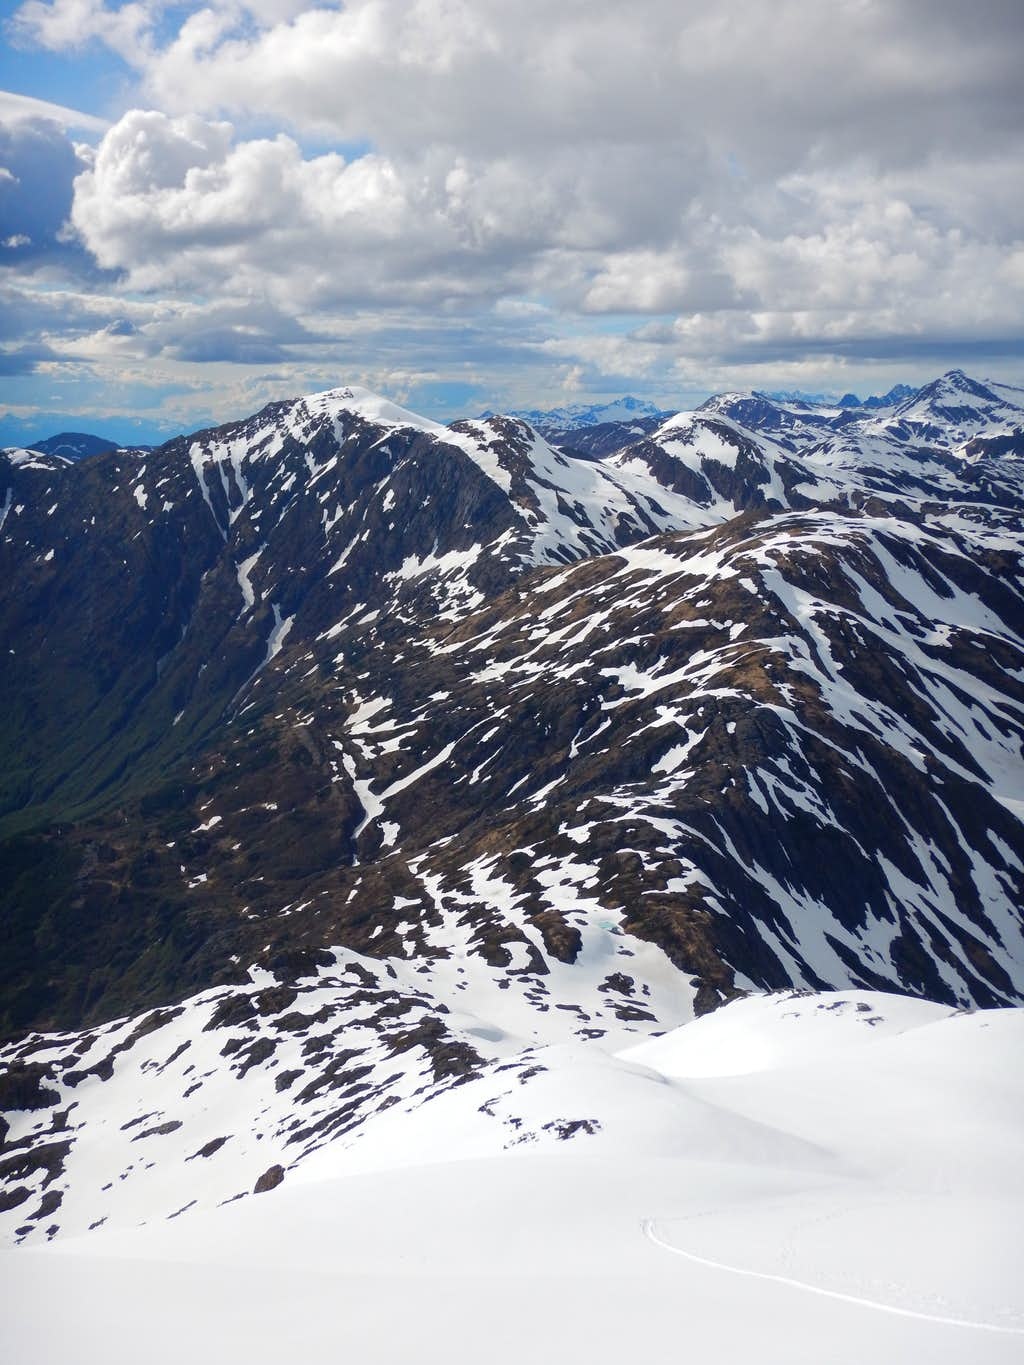 Looking down at approach ridge